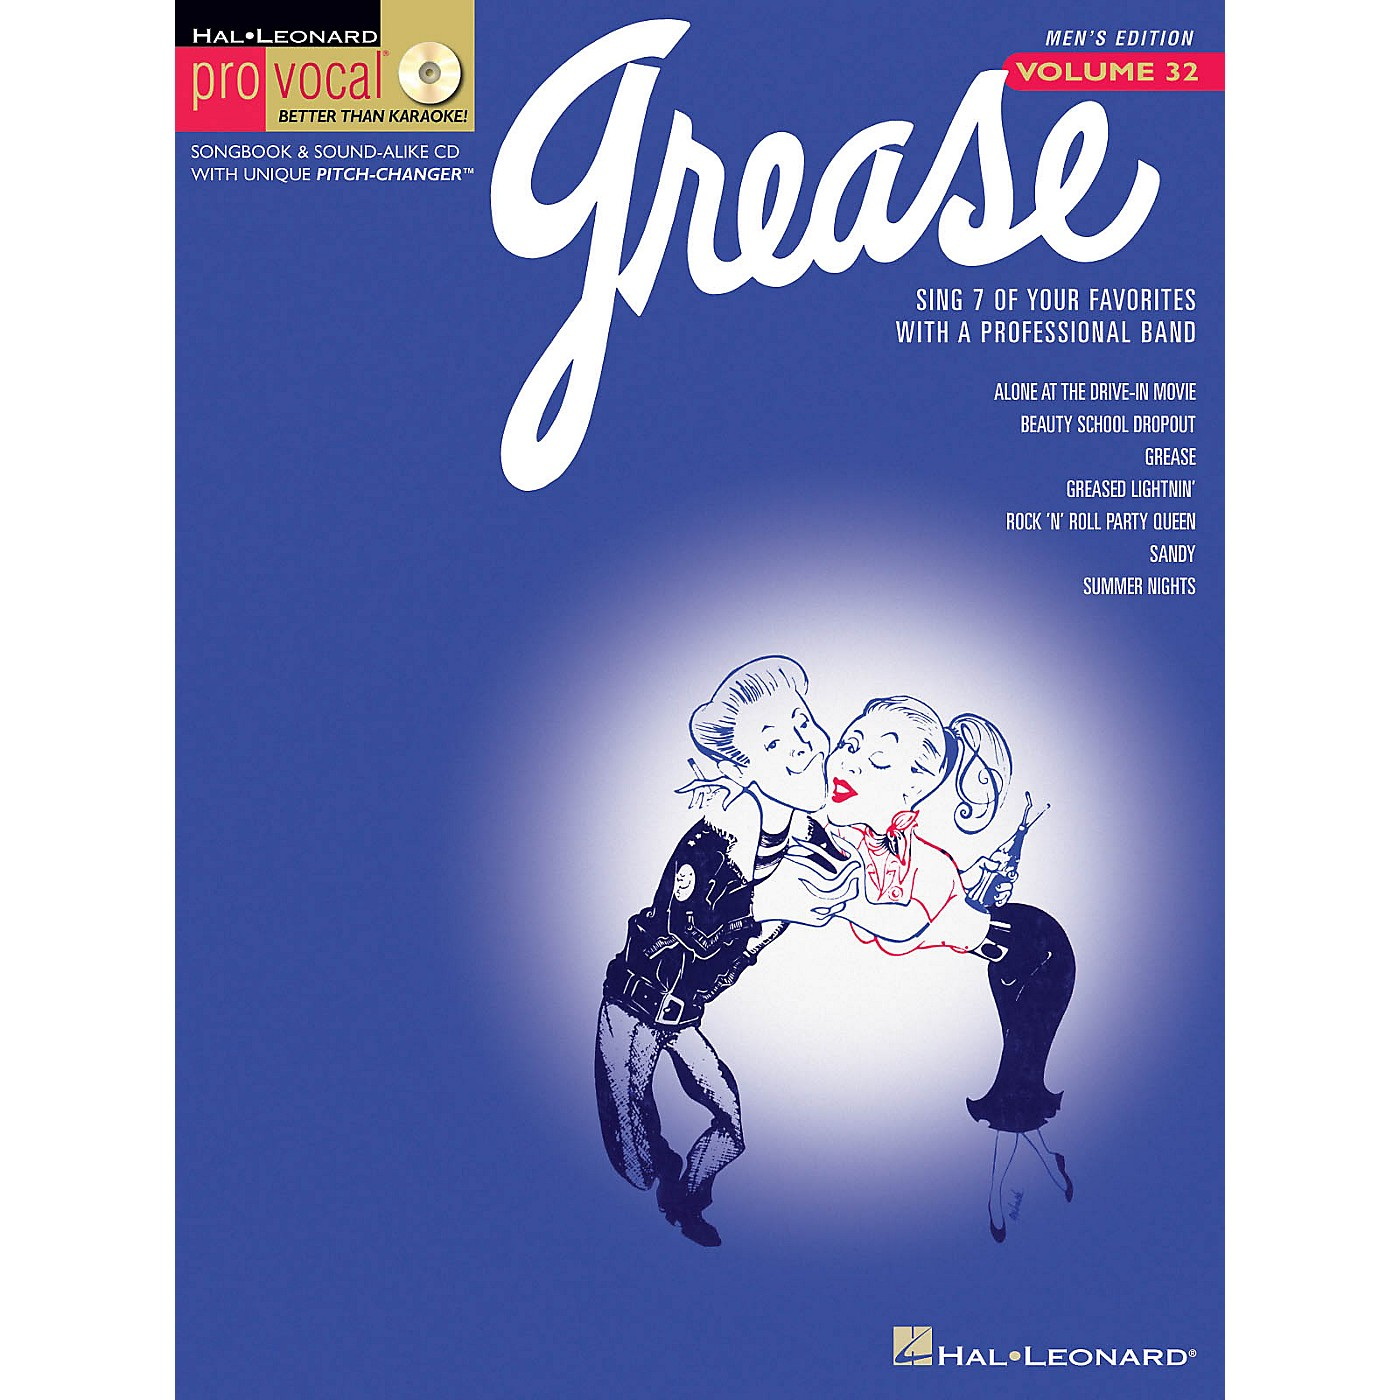 Hal Leonard Grease (Pro Vocal Men's Edition Volume 32) Pro Vocal Series Softcover with CD Composed by Various thumbnail